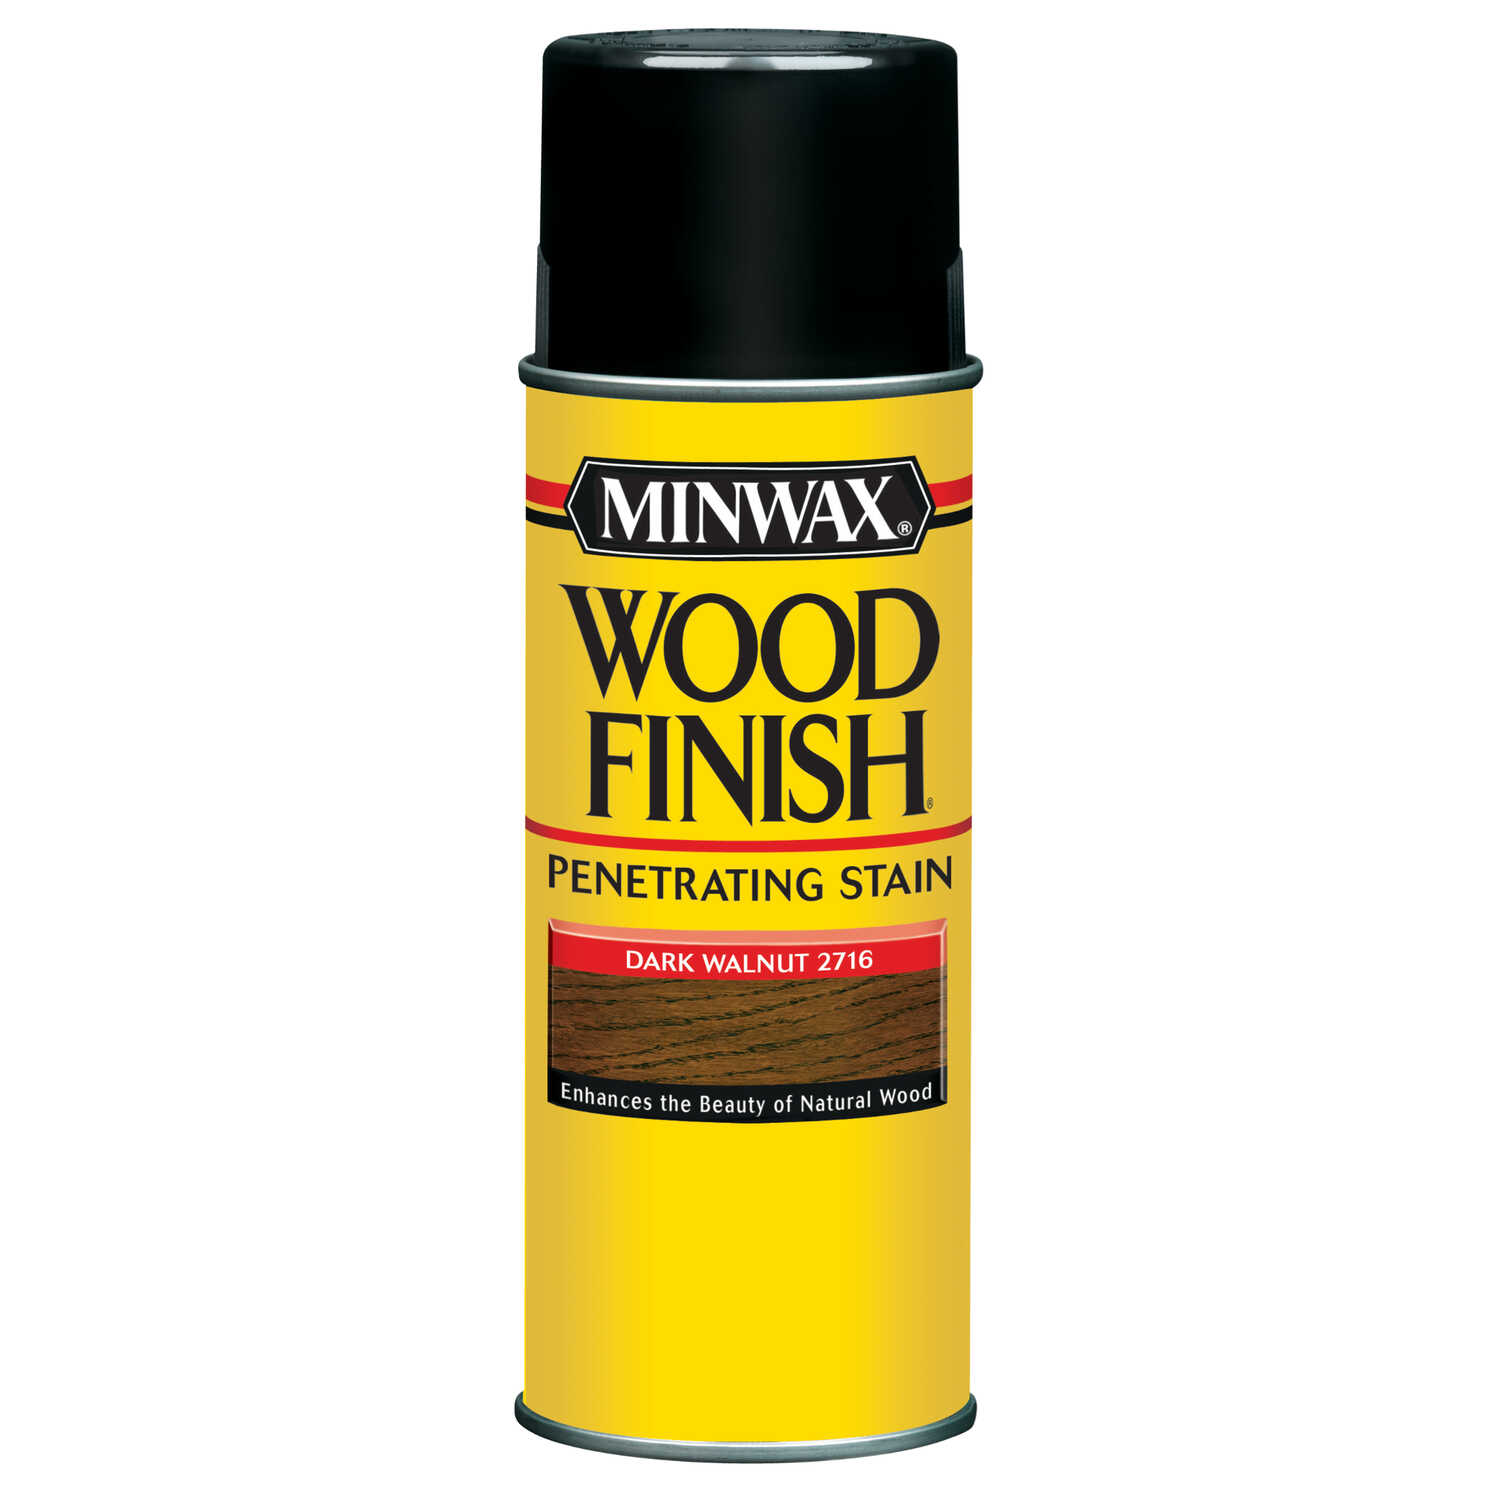 Minwax  Wood Finish  Semi-Transparent  Dark Walnut  Oil-Based  Wood Stain  11.5 oz.